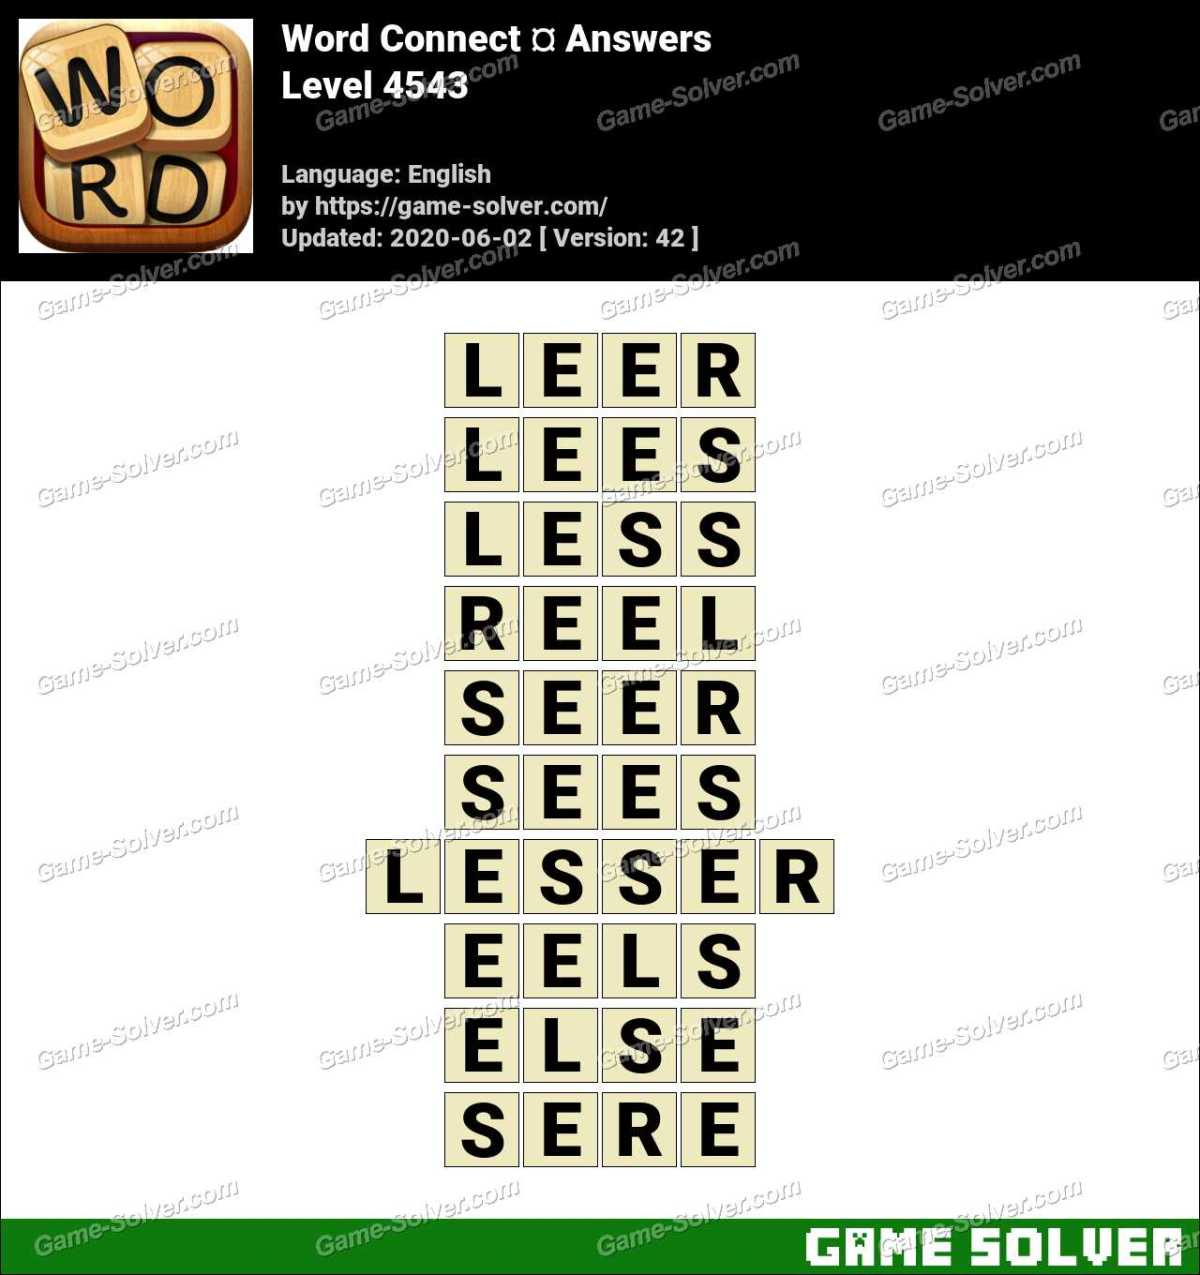 Word Connect Level 4543 Answers